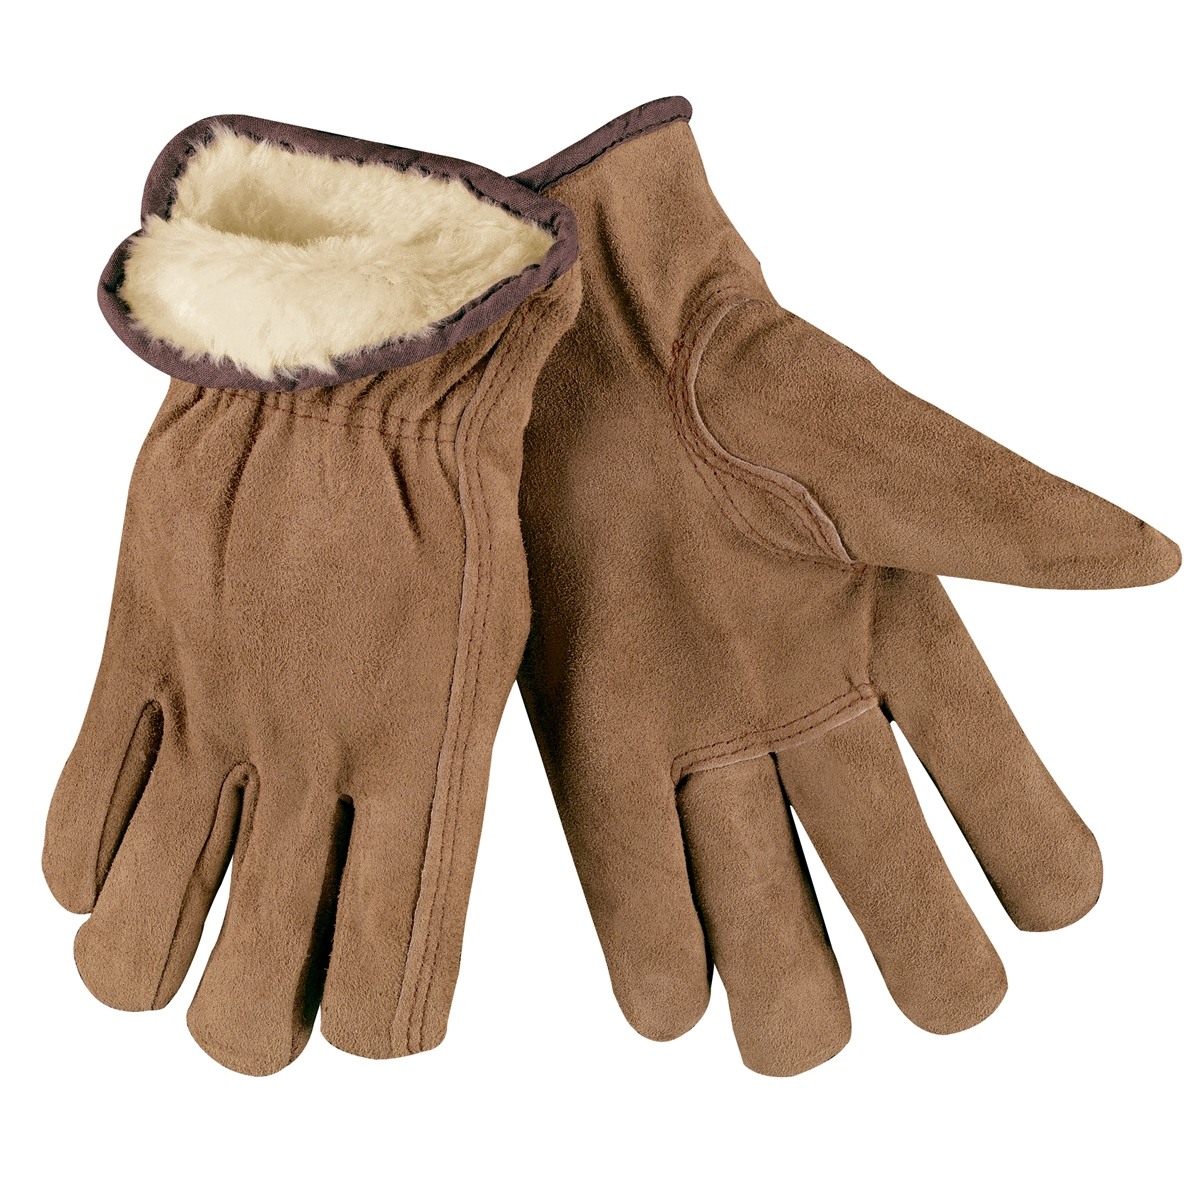 Leather work gloves with wool lining - Memphis 3170 Split Cowhide Leather Driver Gloves Acrylic Pile Lined Keystone Thumb